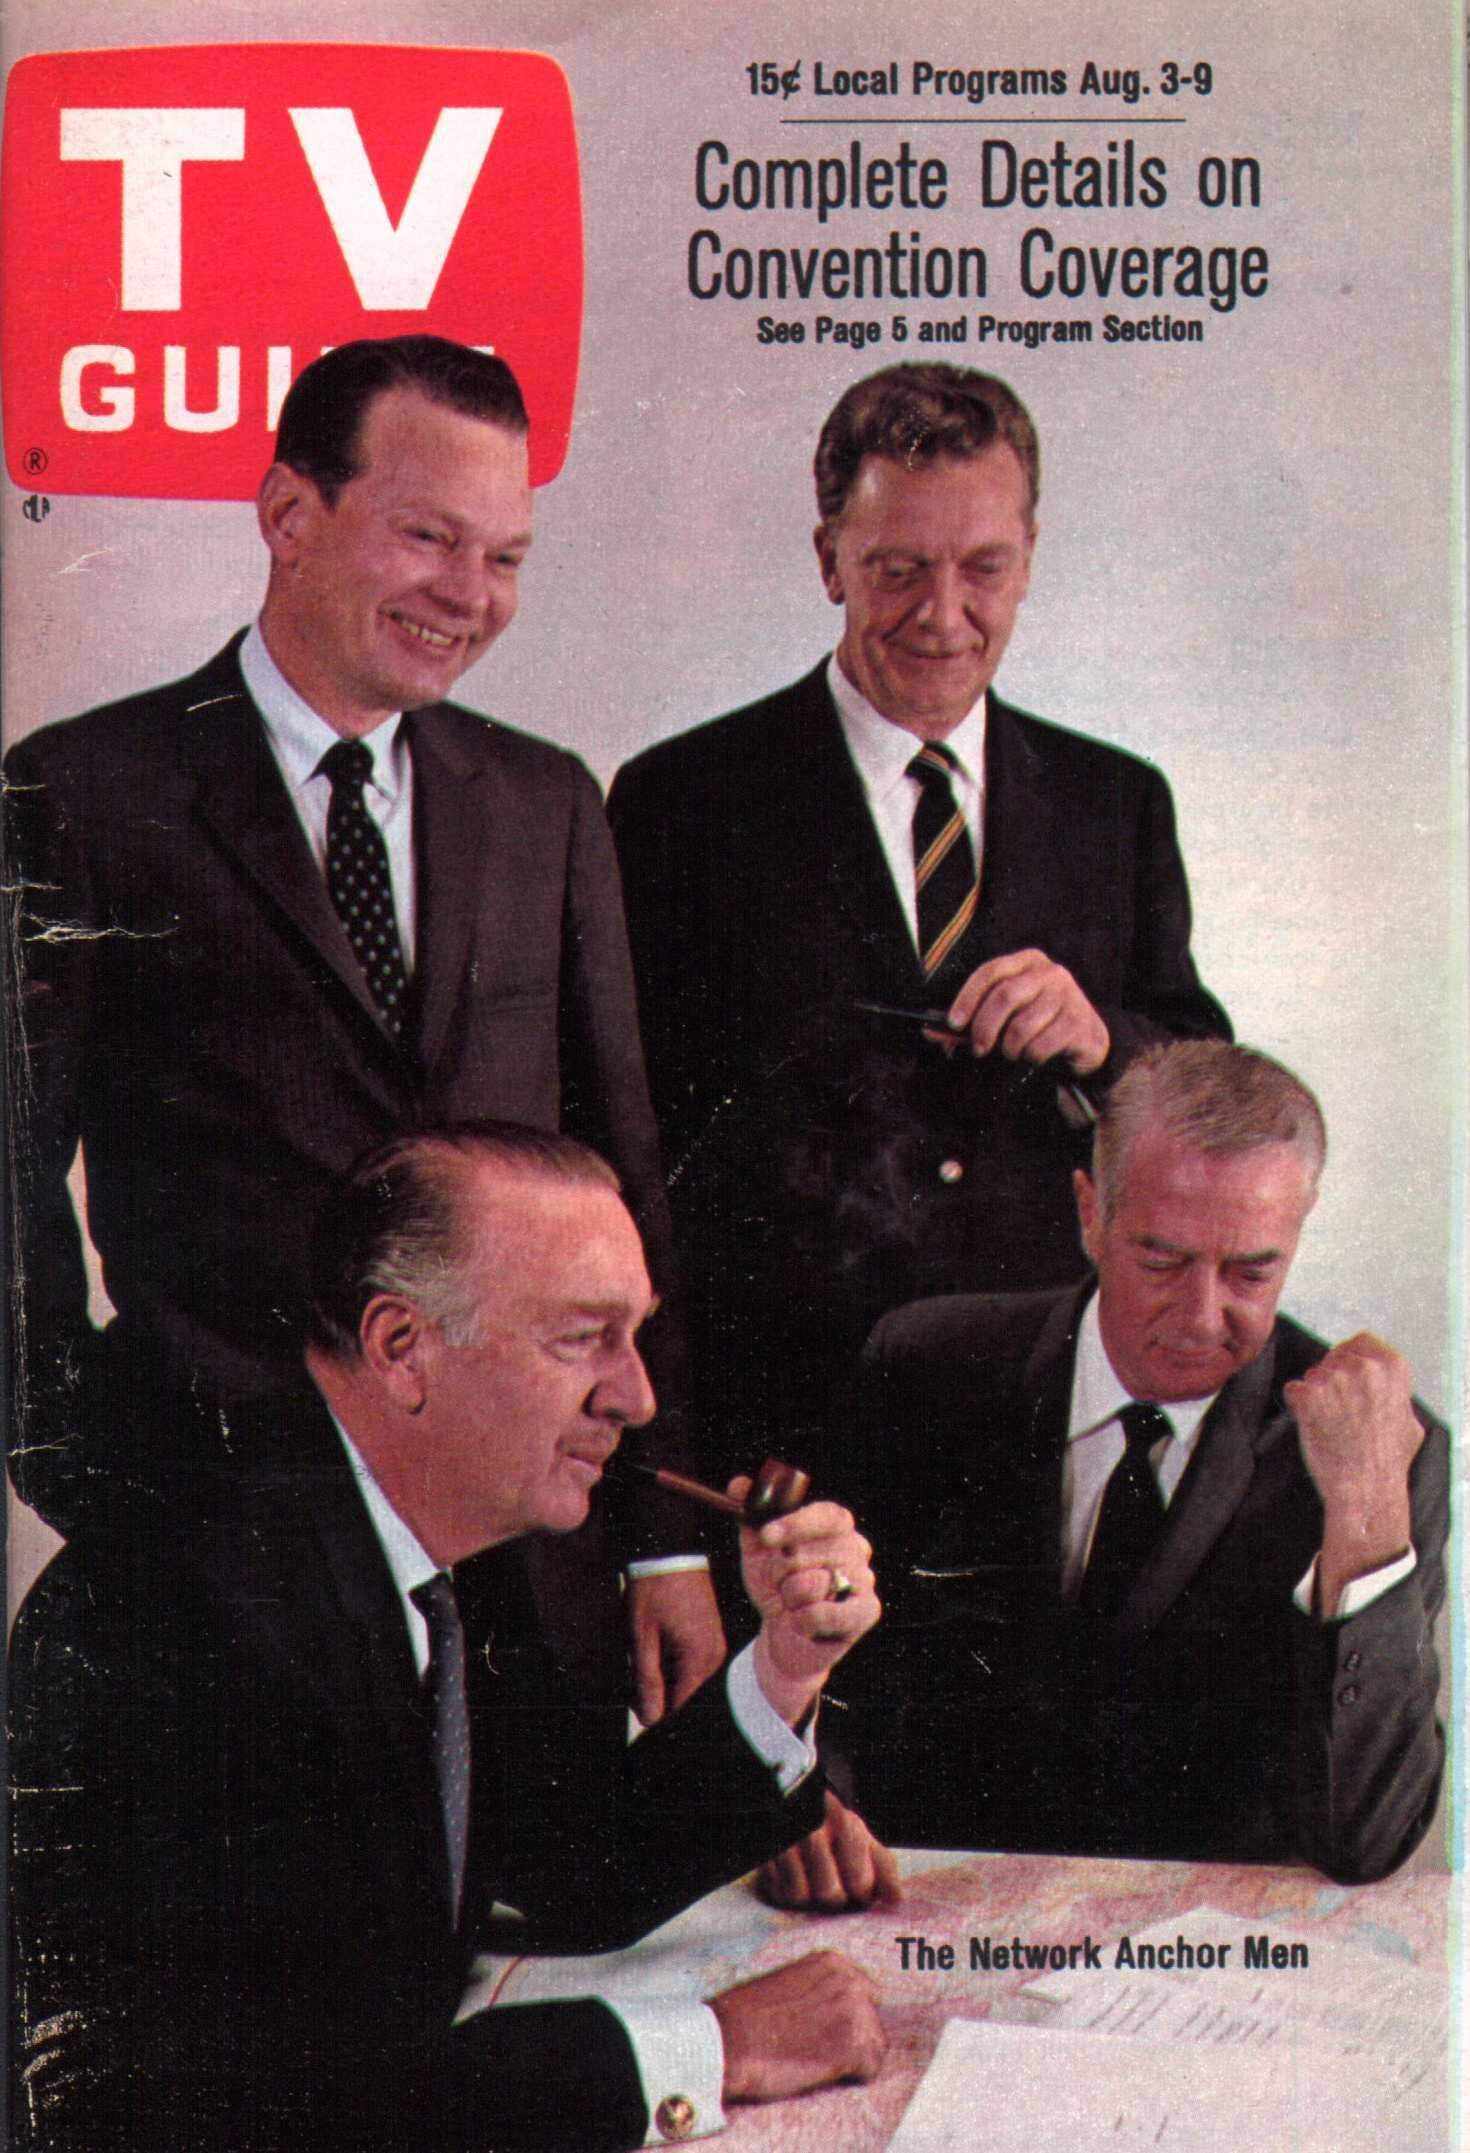 The big three network news anchors in 1968 -- Huntley